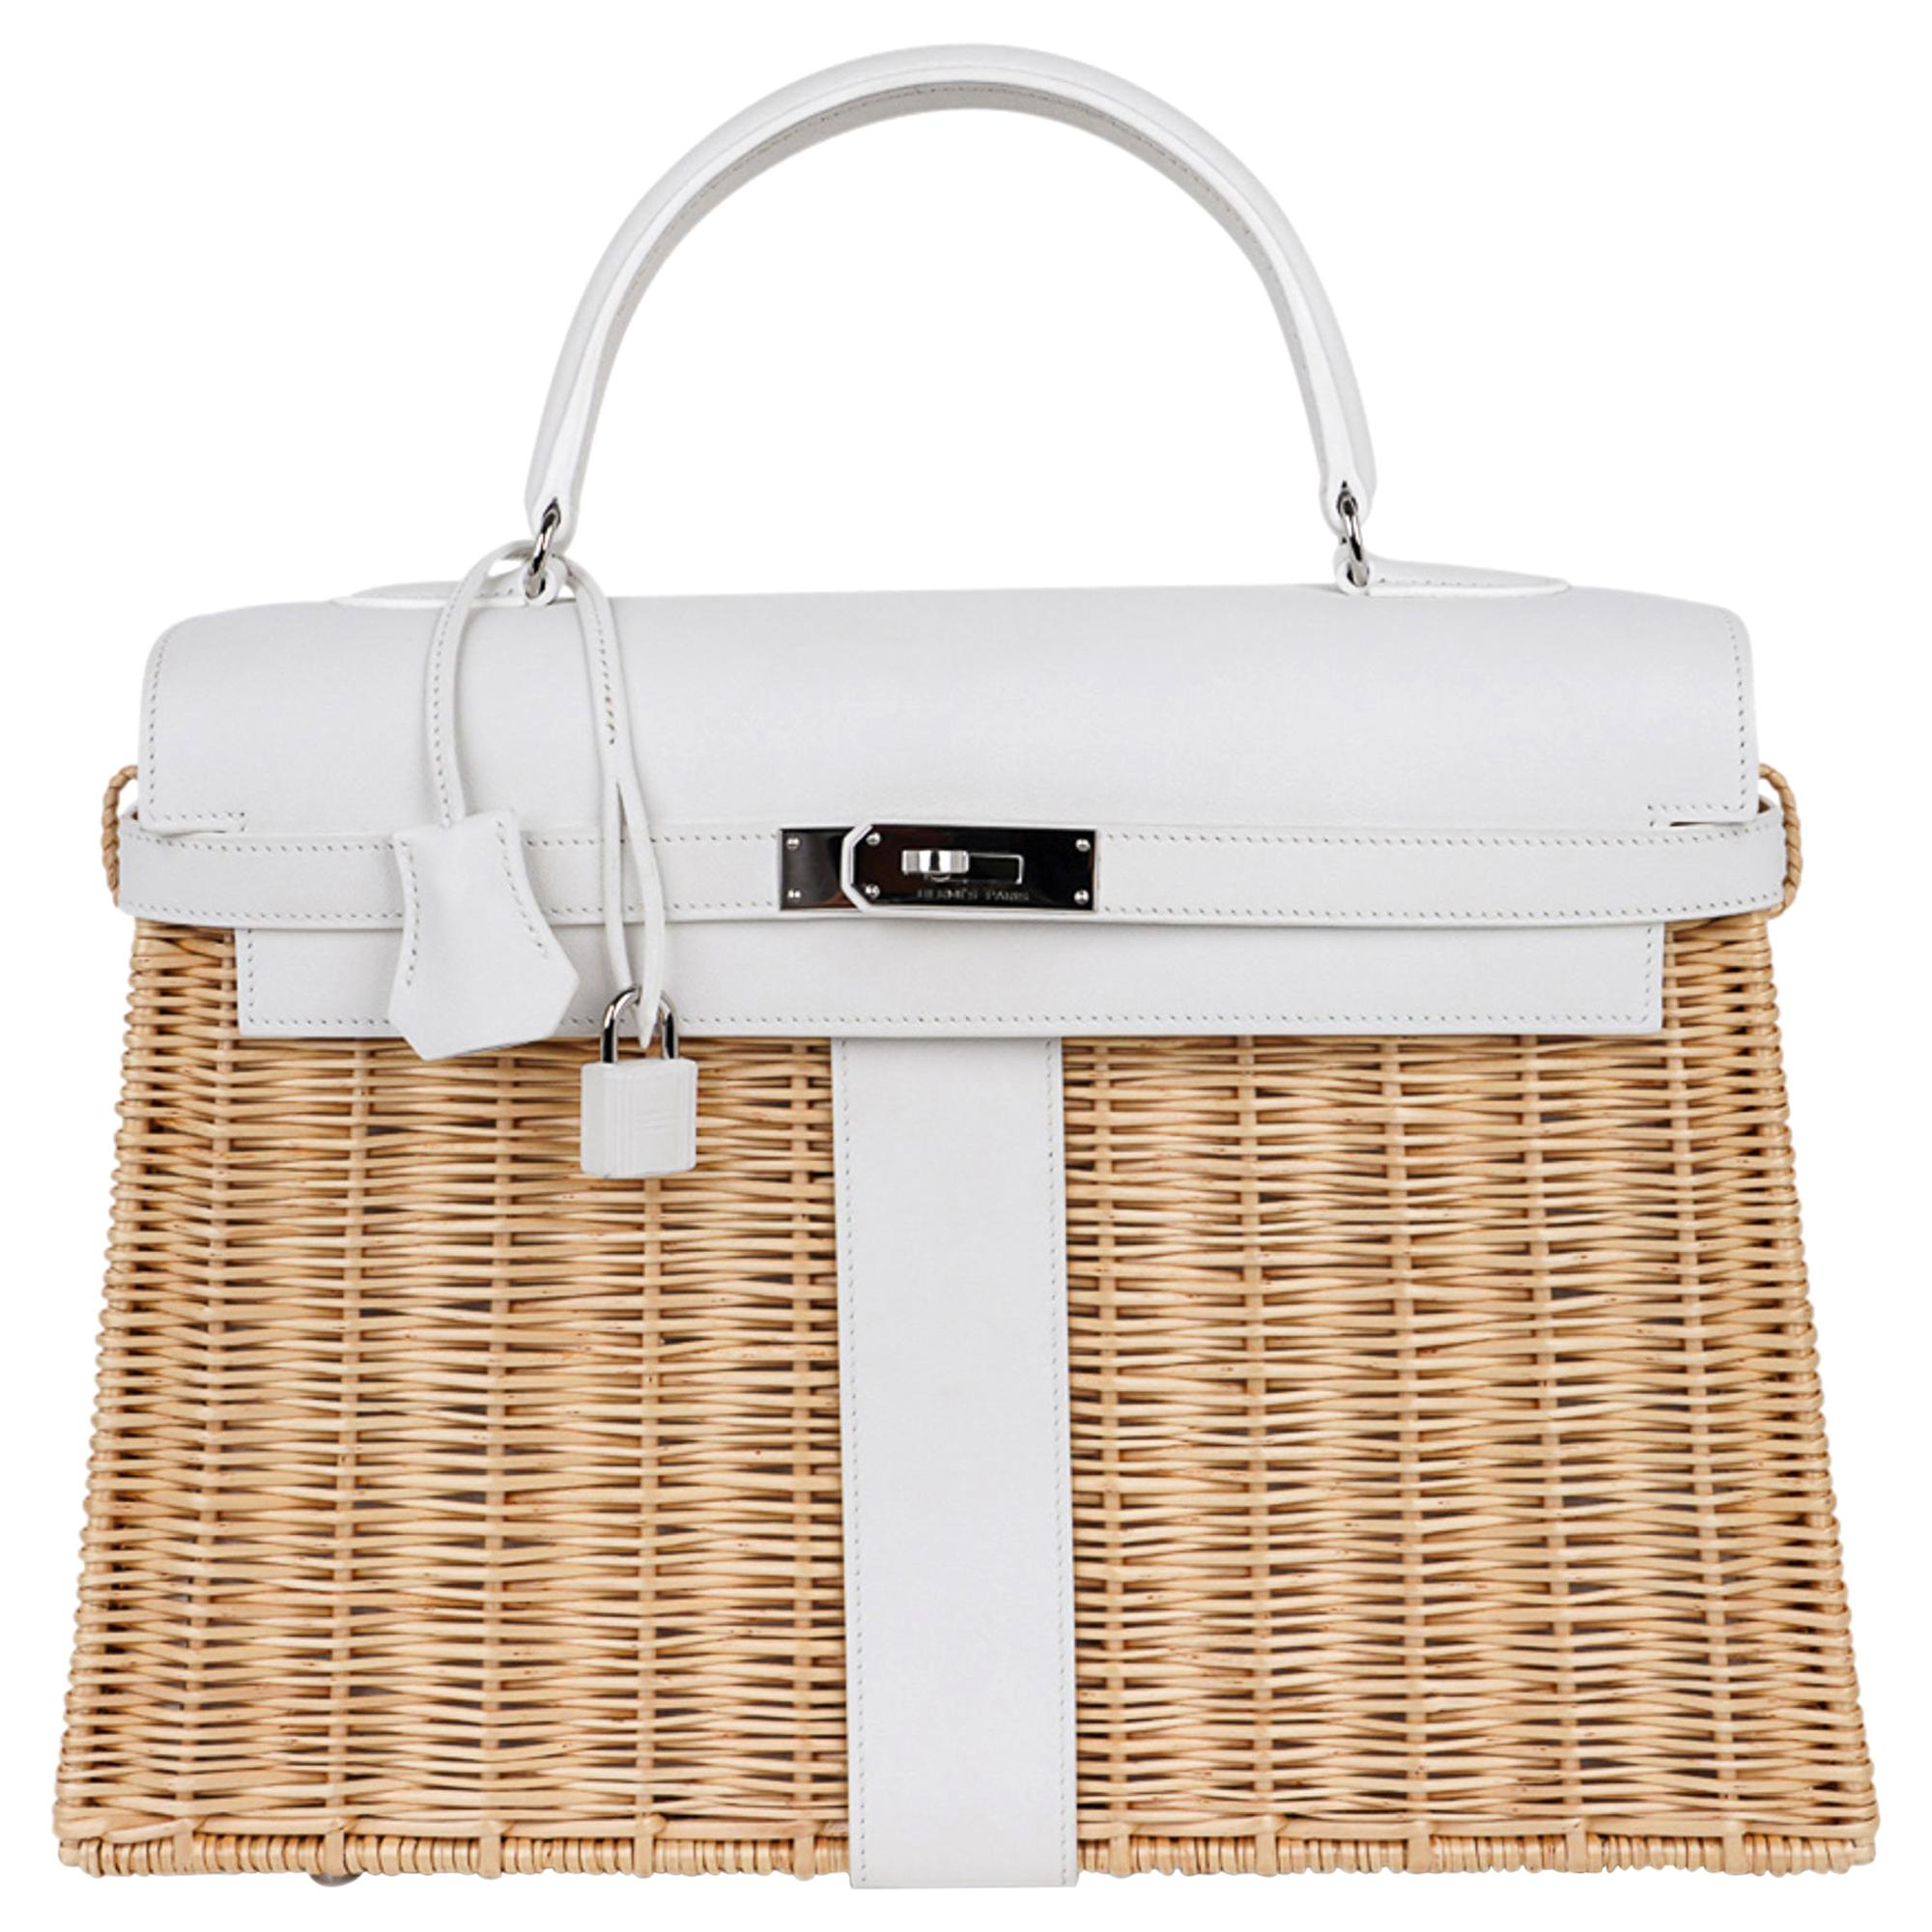 Hermes Kelly Picnic 35 Bag White Swift Leather / Osier (Wicker) Limited Edition